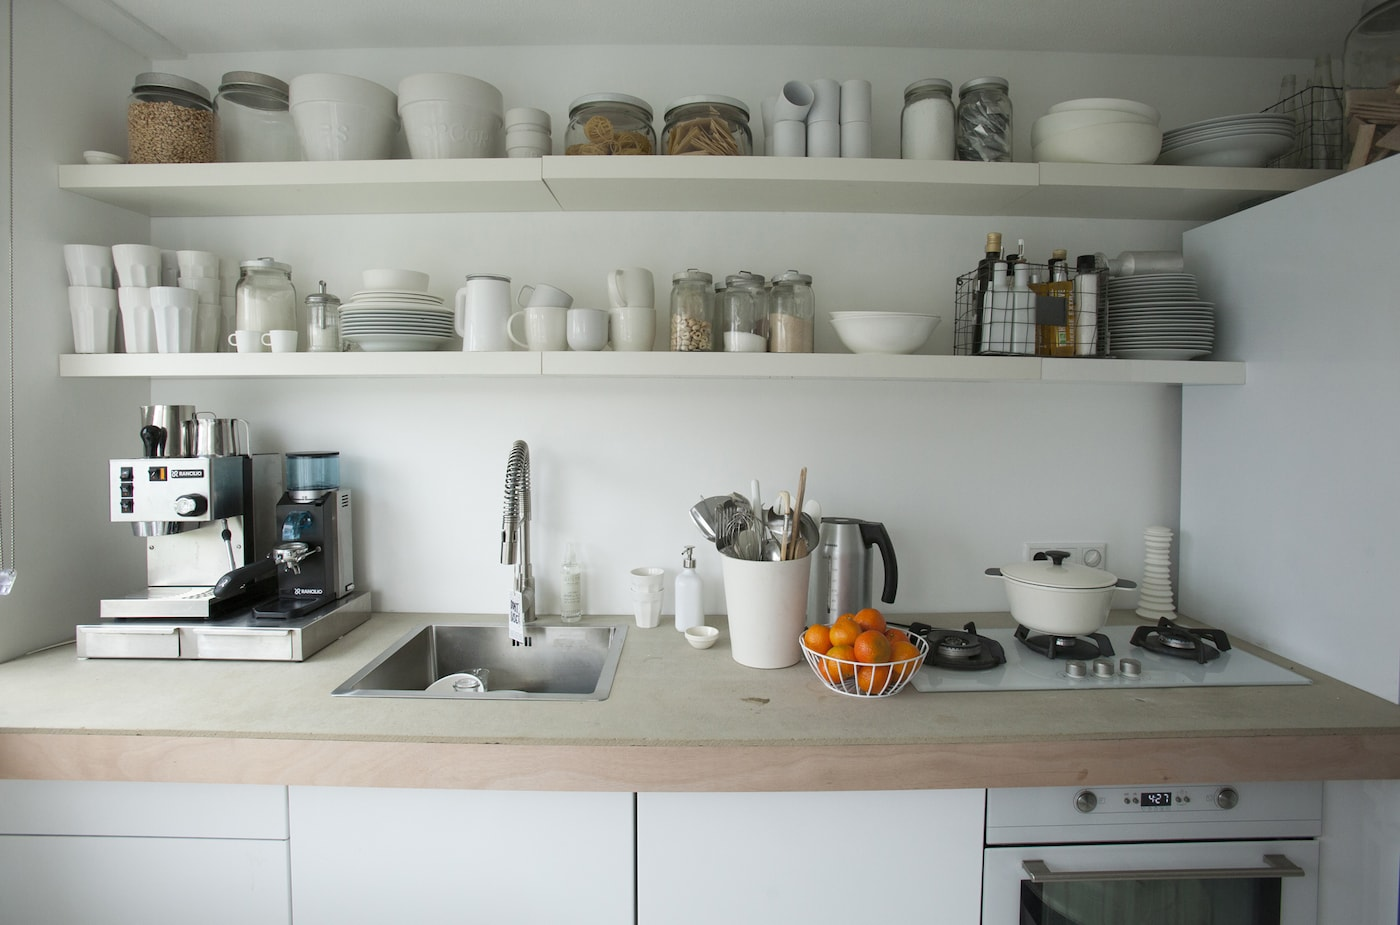 kitchen shelving ideas inspirational plan for natural | Inspiration for a small kitchen - IKEA